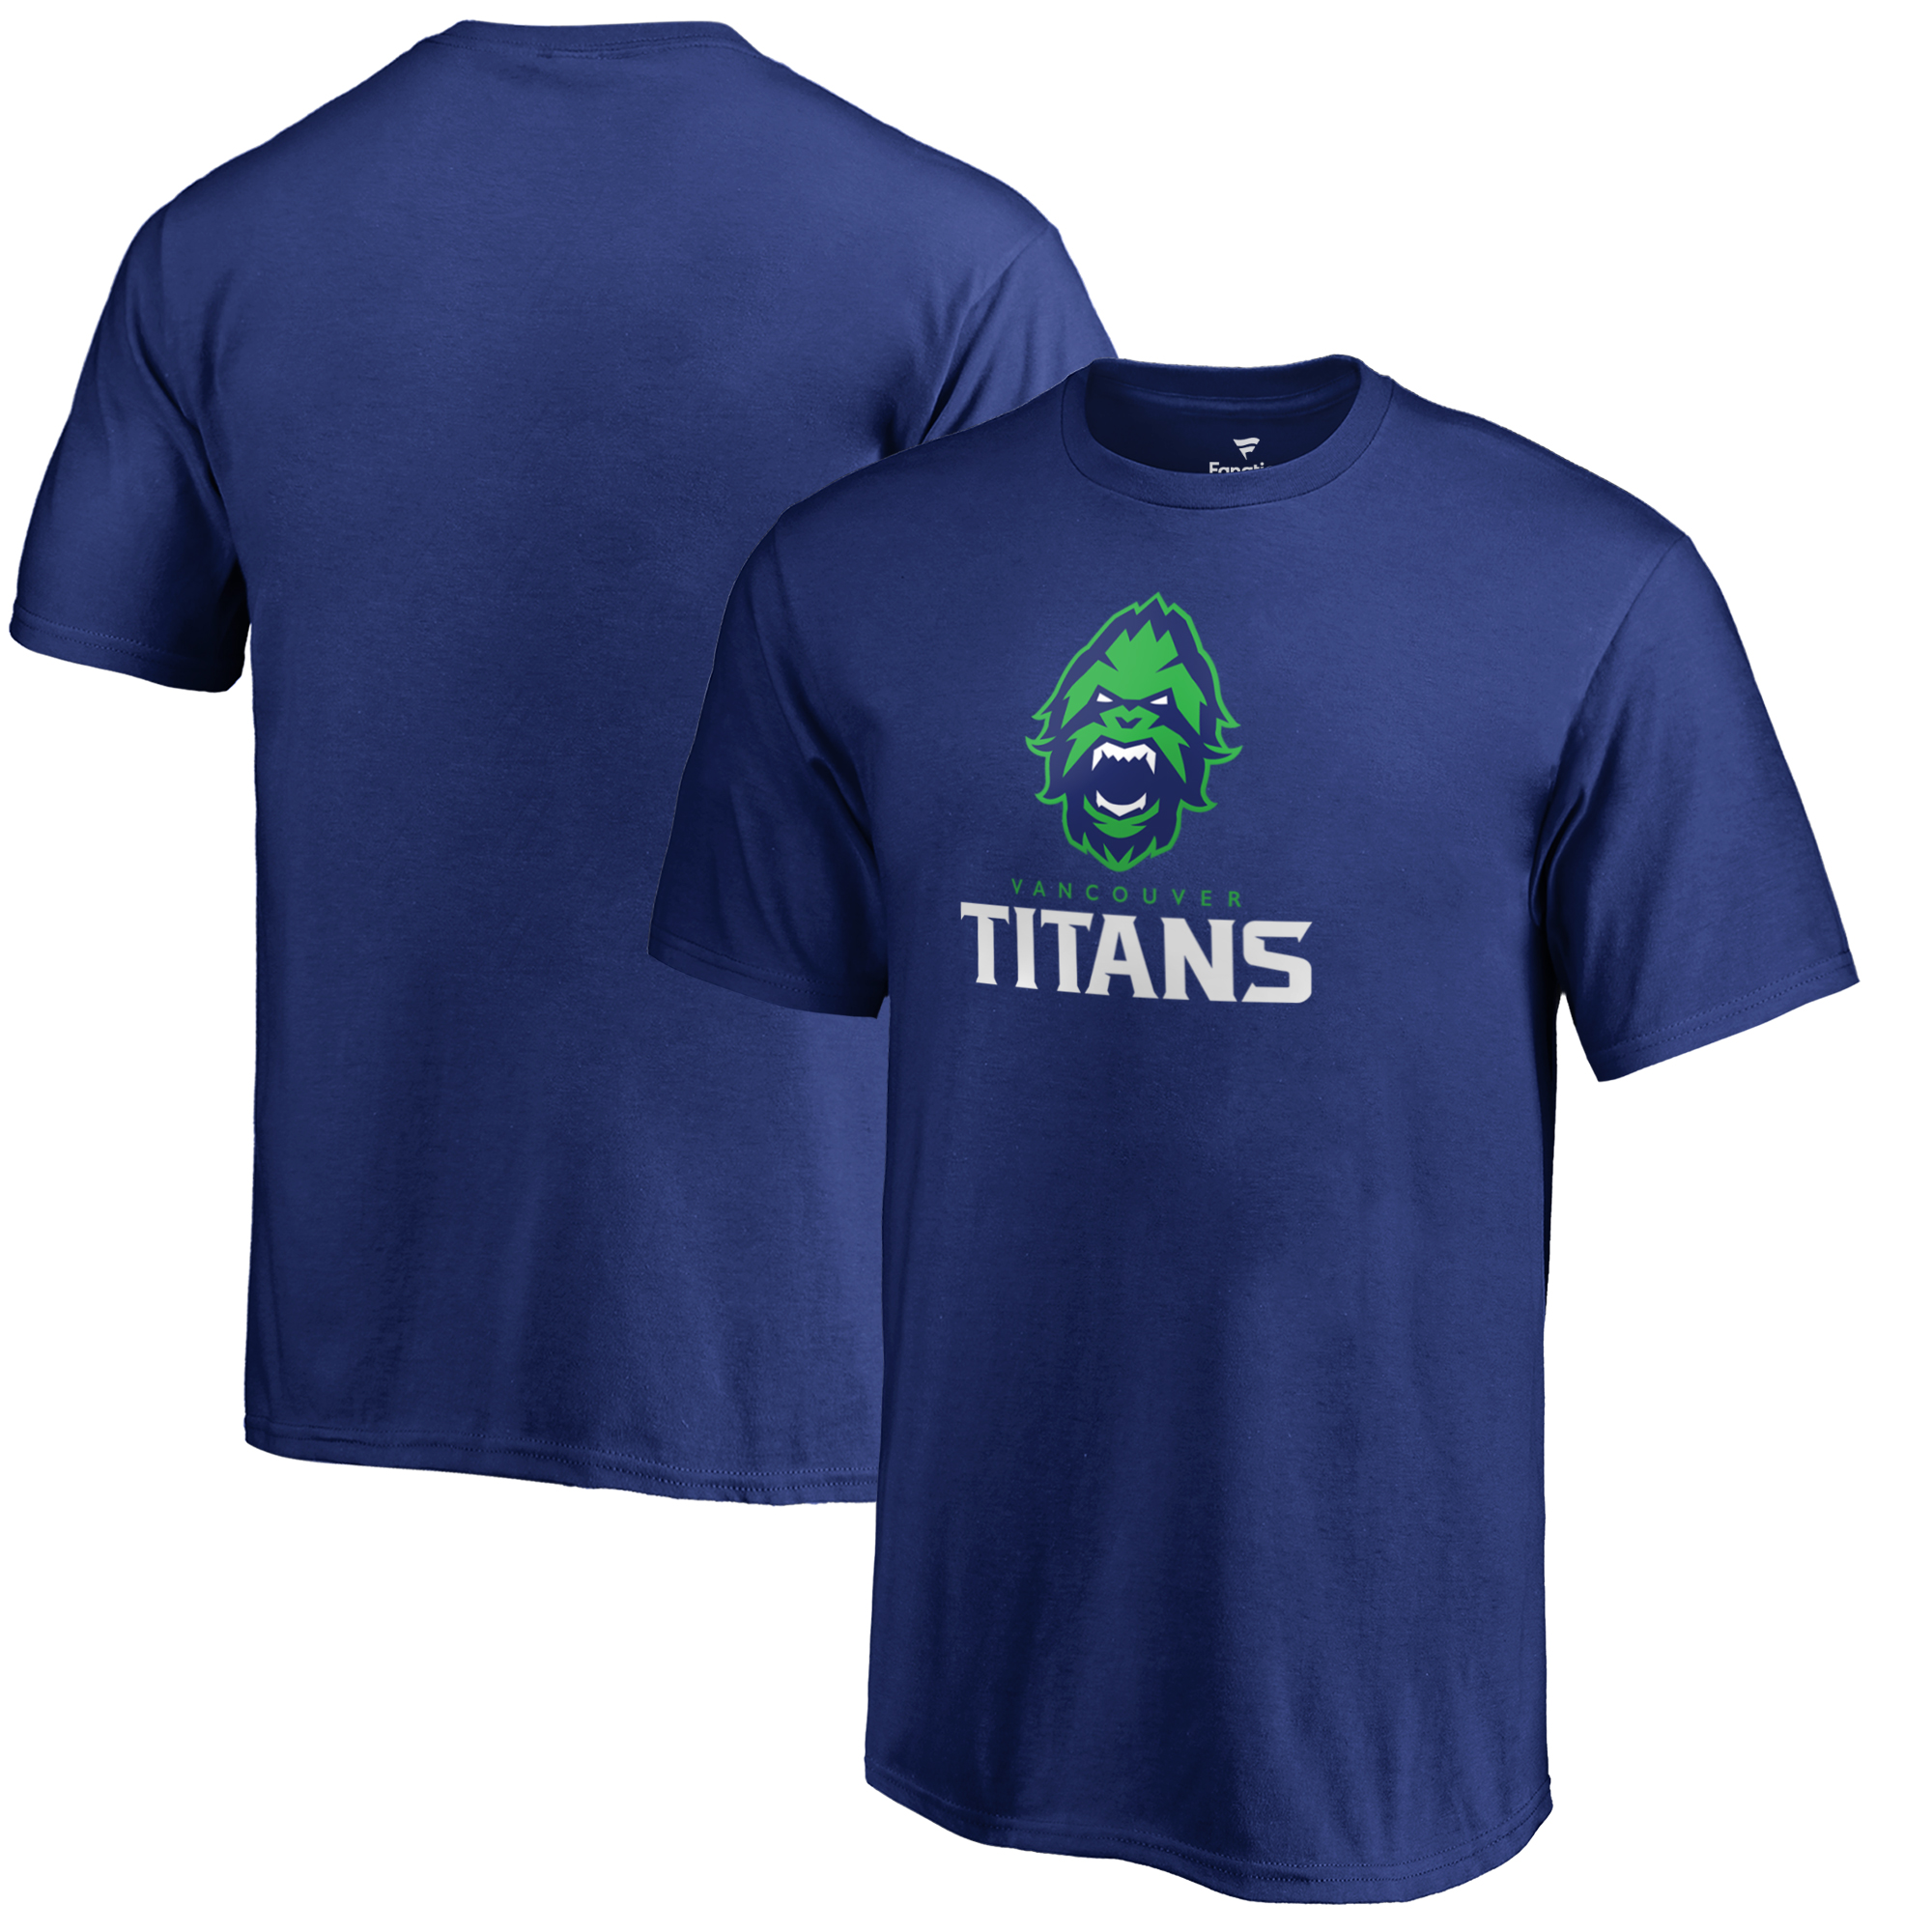 Vancouver Titans Fanatics Branded Youth Team Identity T-Shirt - Royal